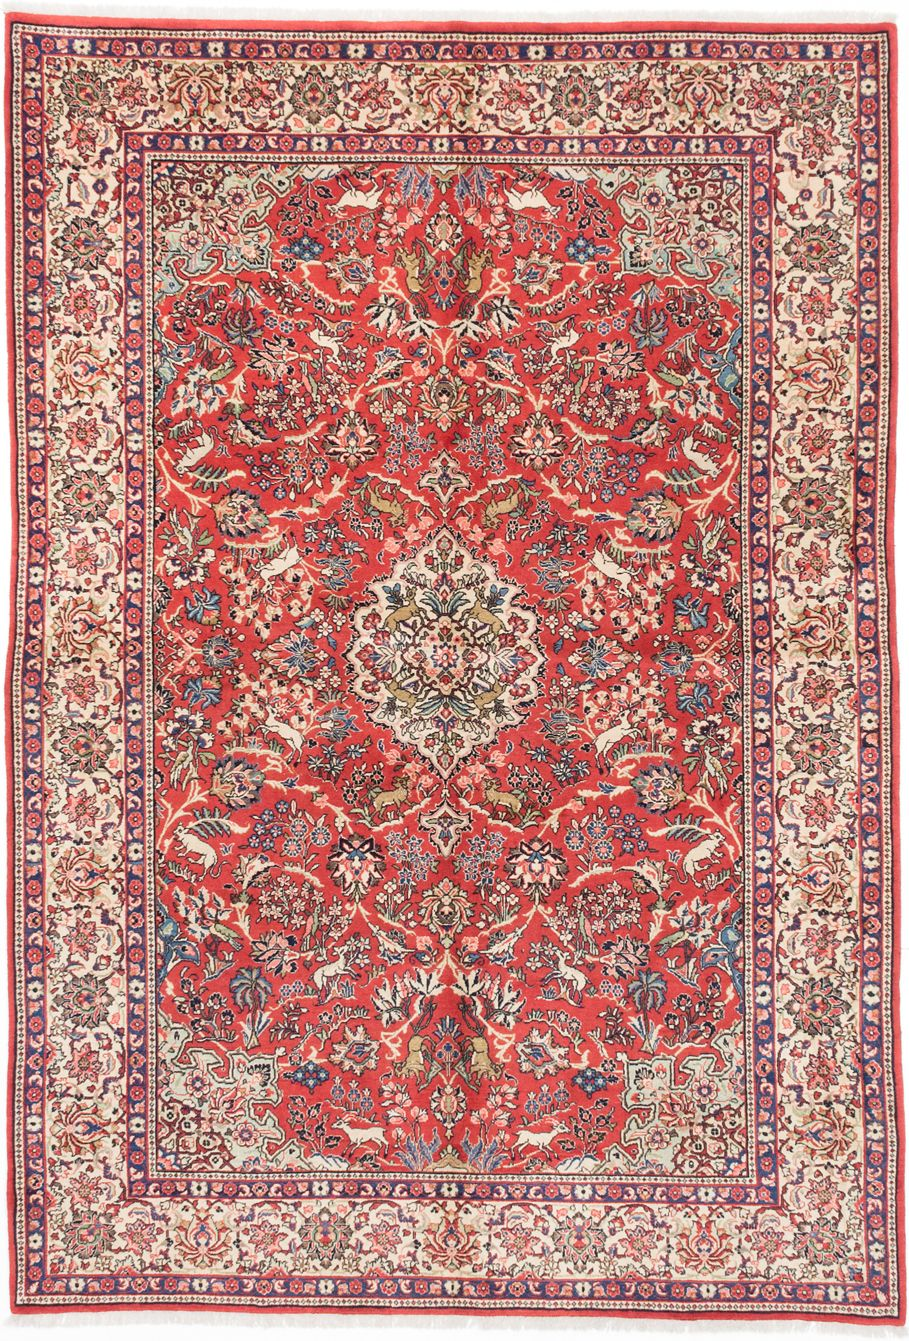 Hand Knotted Sarough Copper Wool Rug 7 0 X 10 2 Rugs On Carpet Rugs Australia Rug Texture